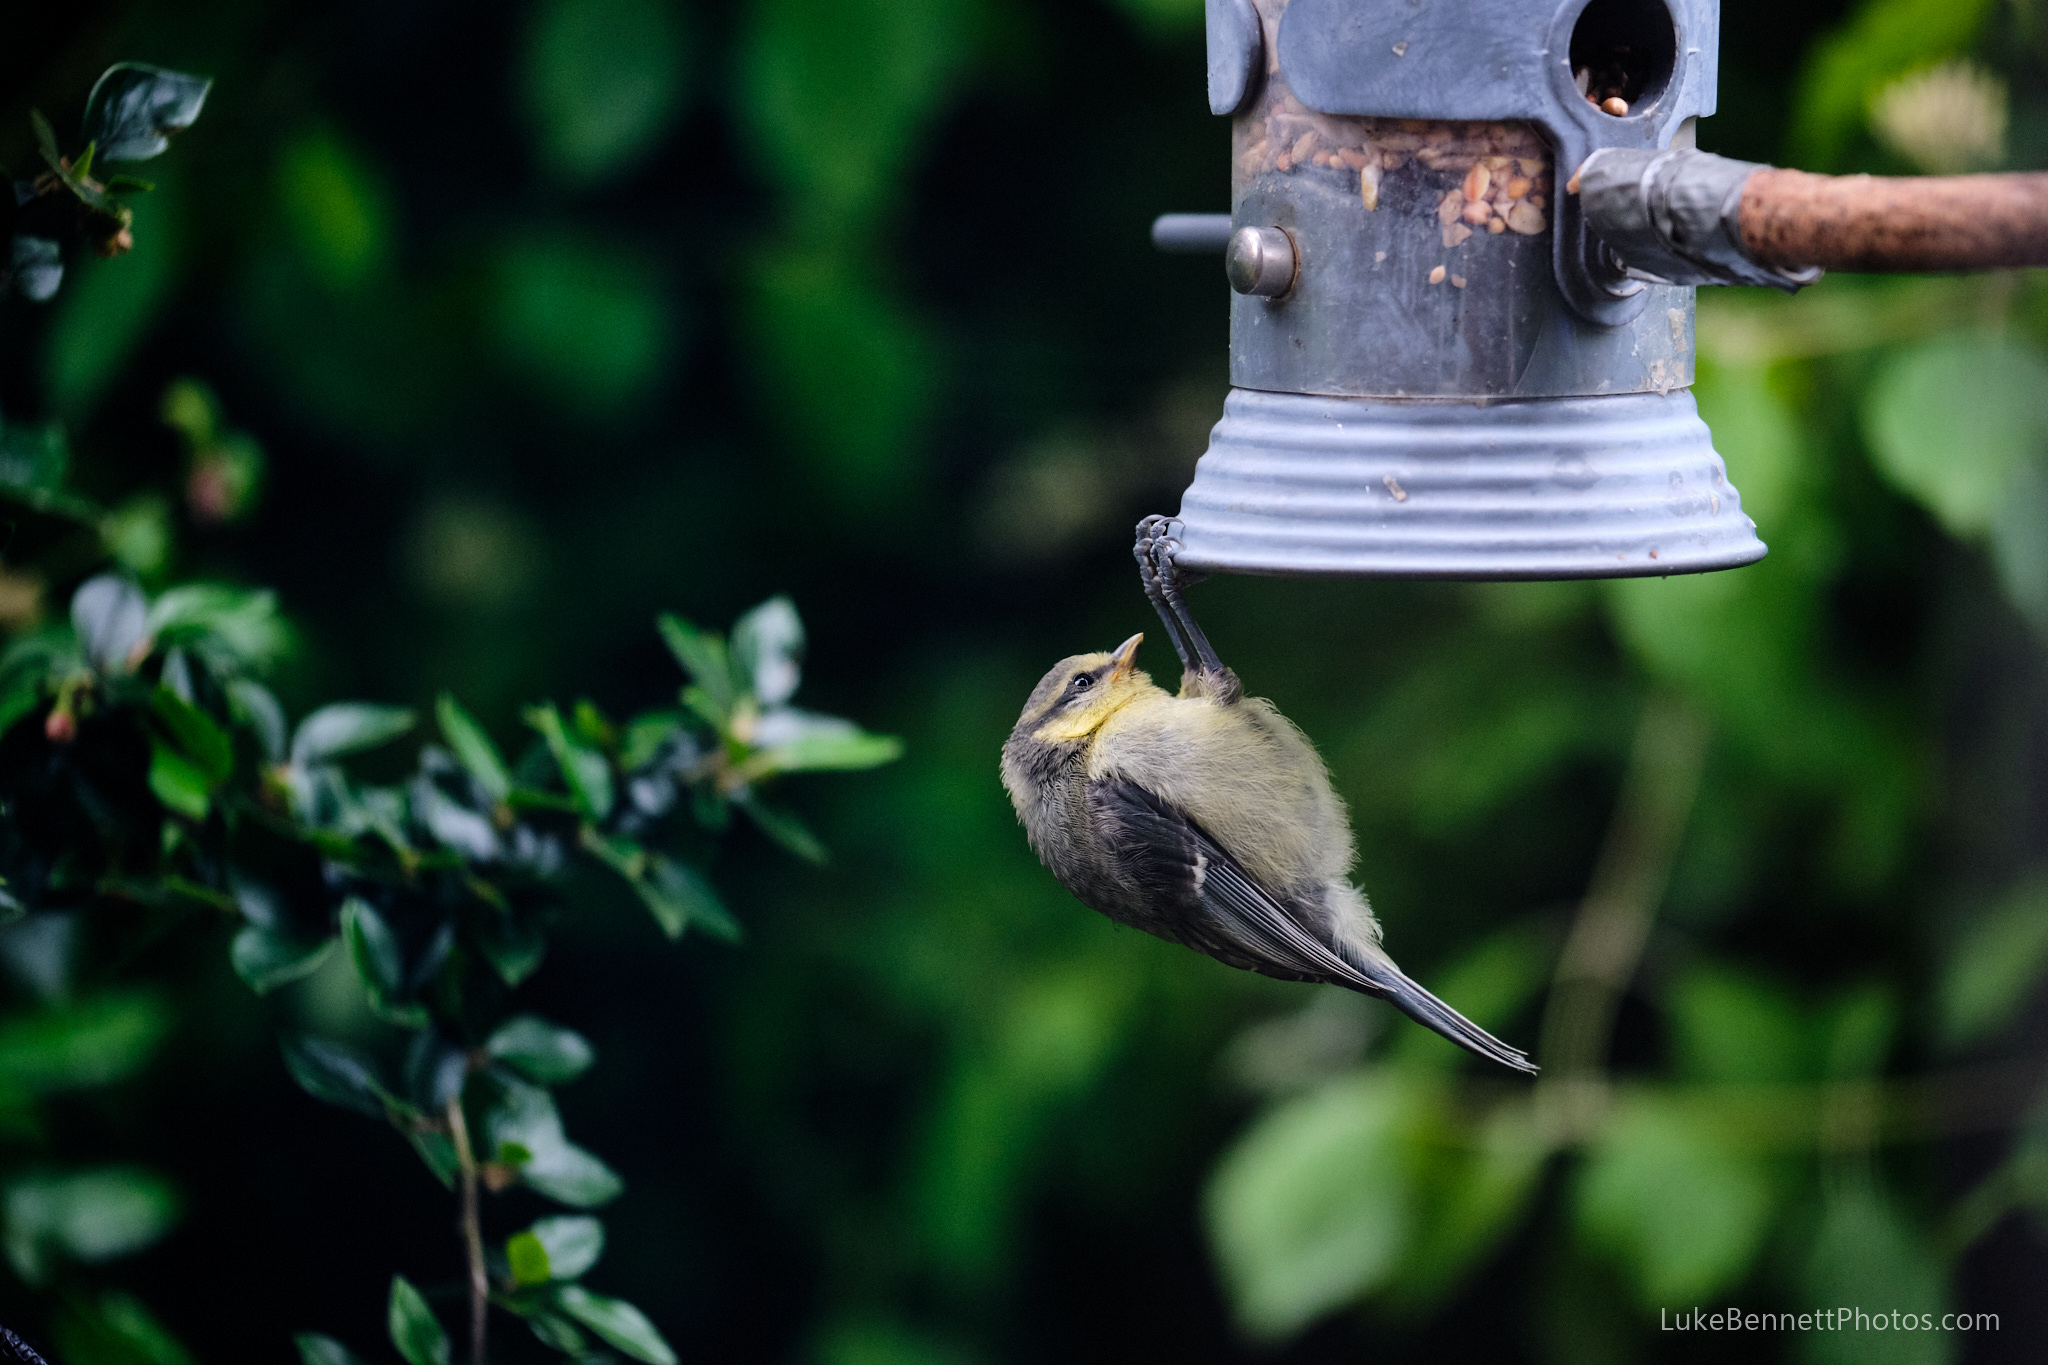 A young blue tit learning how to operate the bird feeder